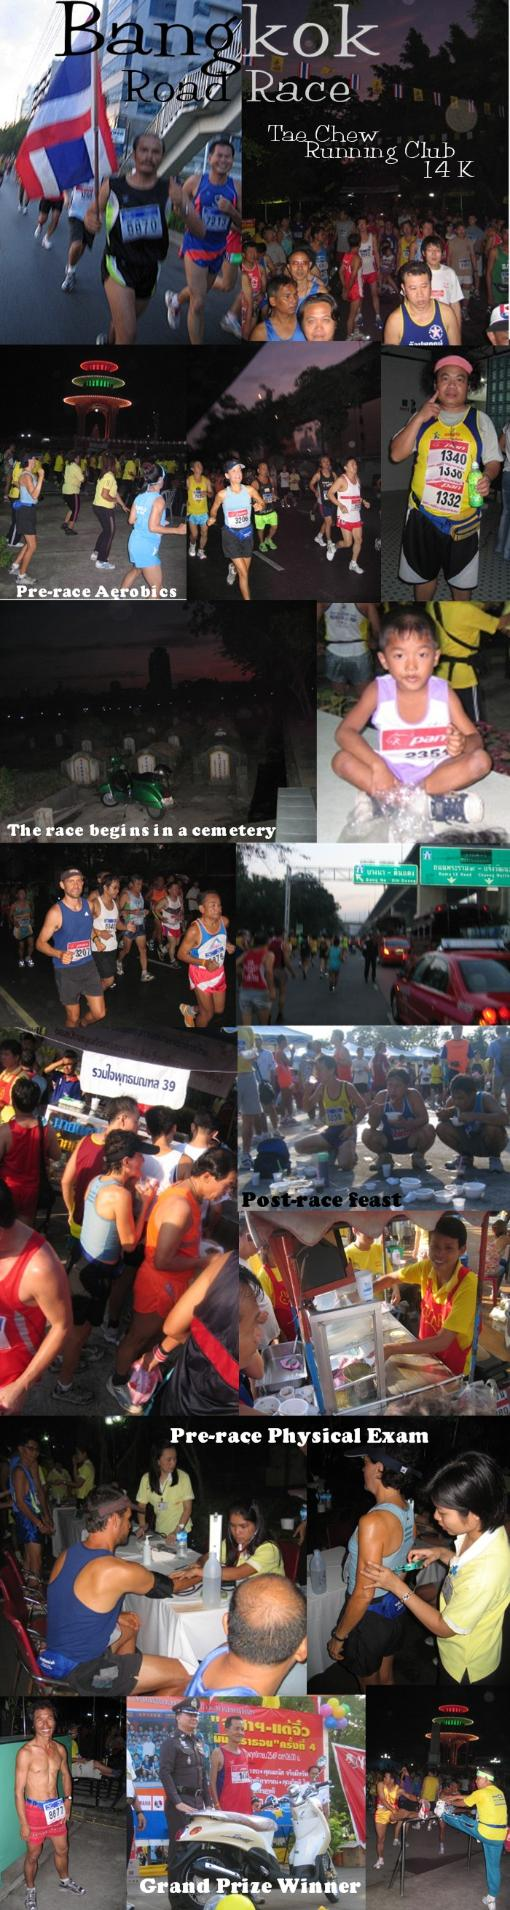 A photo collage from the Tae Chew Running Club 14K kilometer running roadrace in Bangkok, Thailand